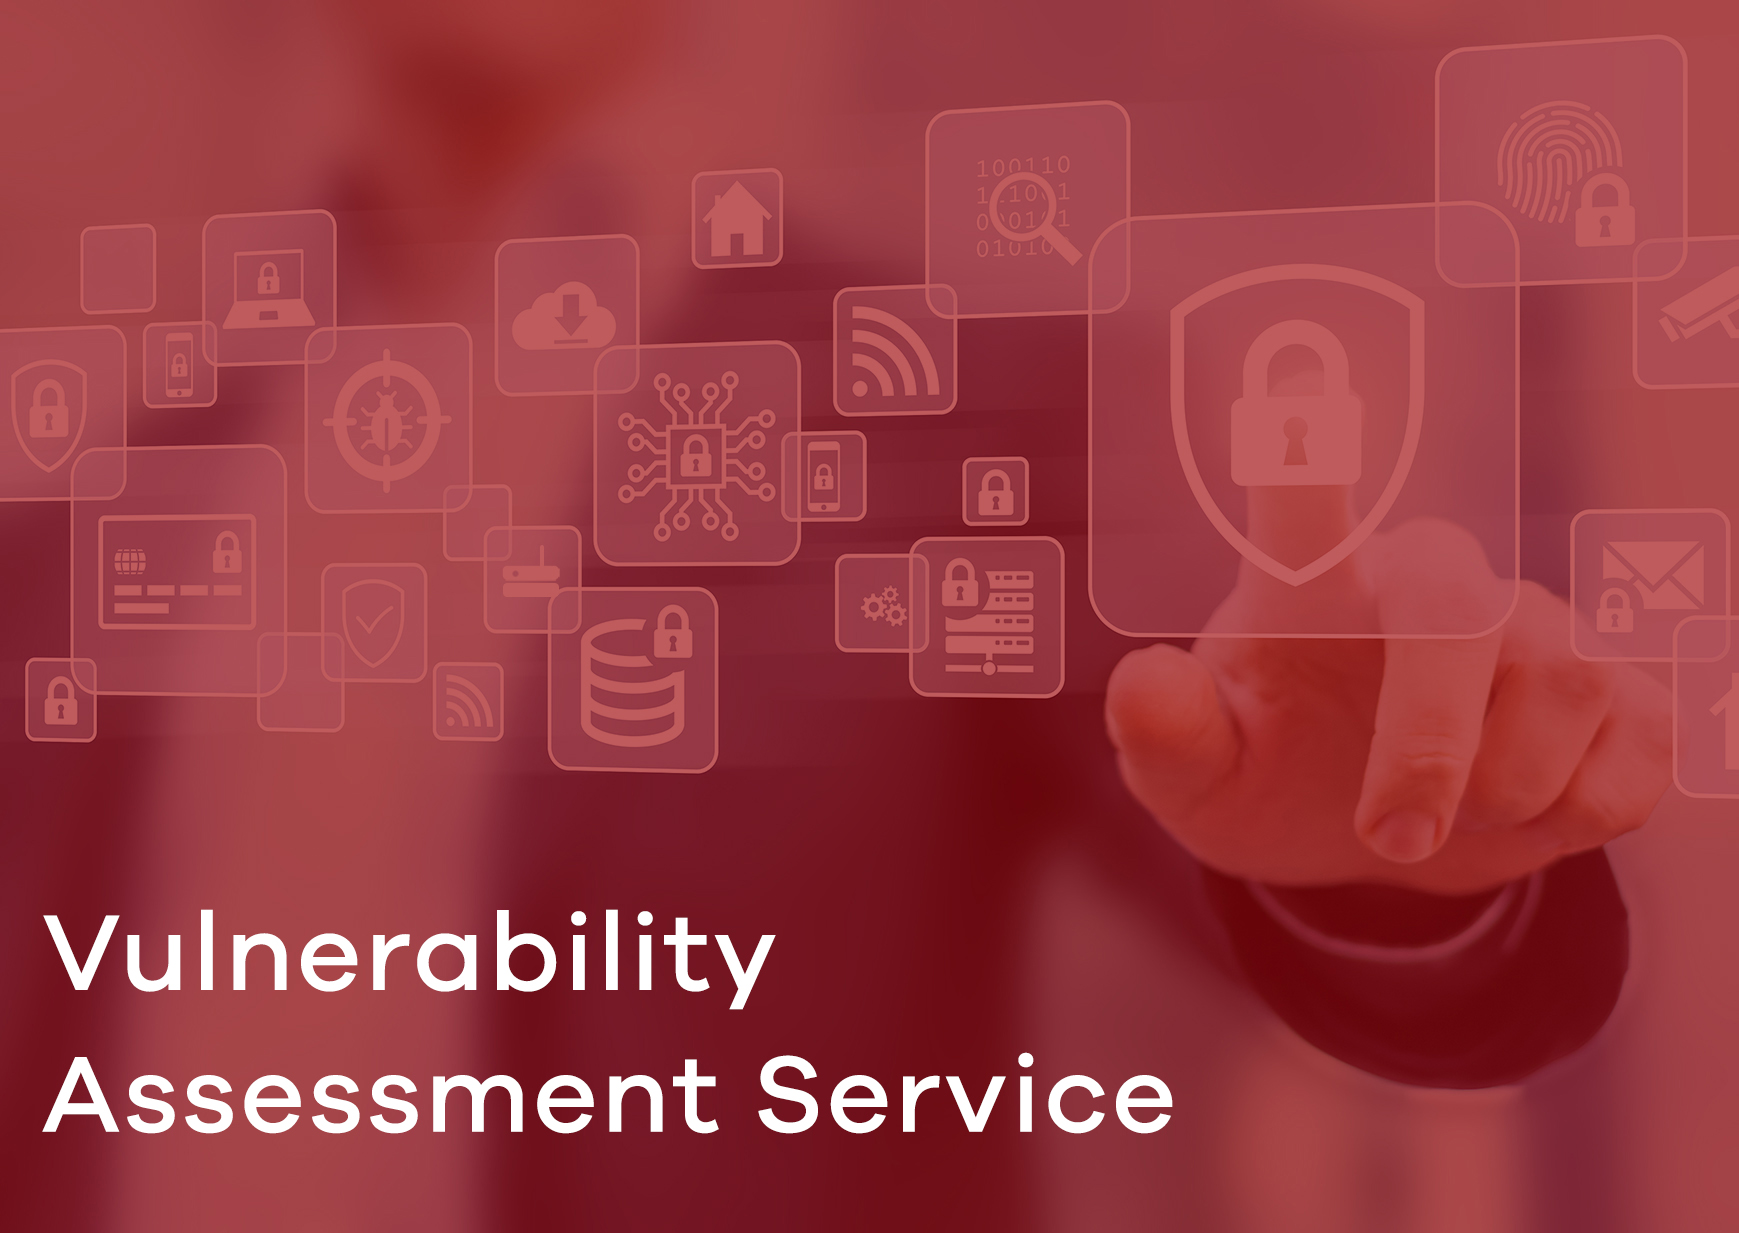 Remote Vulnerability Assessment Krome Technologies Examples of systems for which vulnerability assessments are. https www krome co uk what we do services professional services remote vulnerability assessment